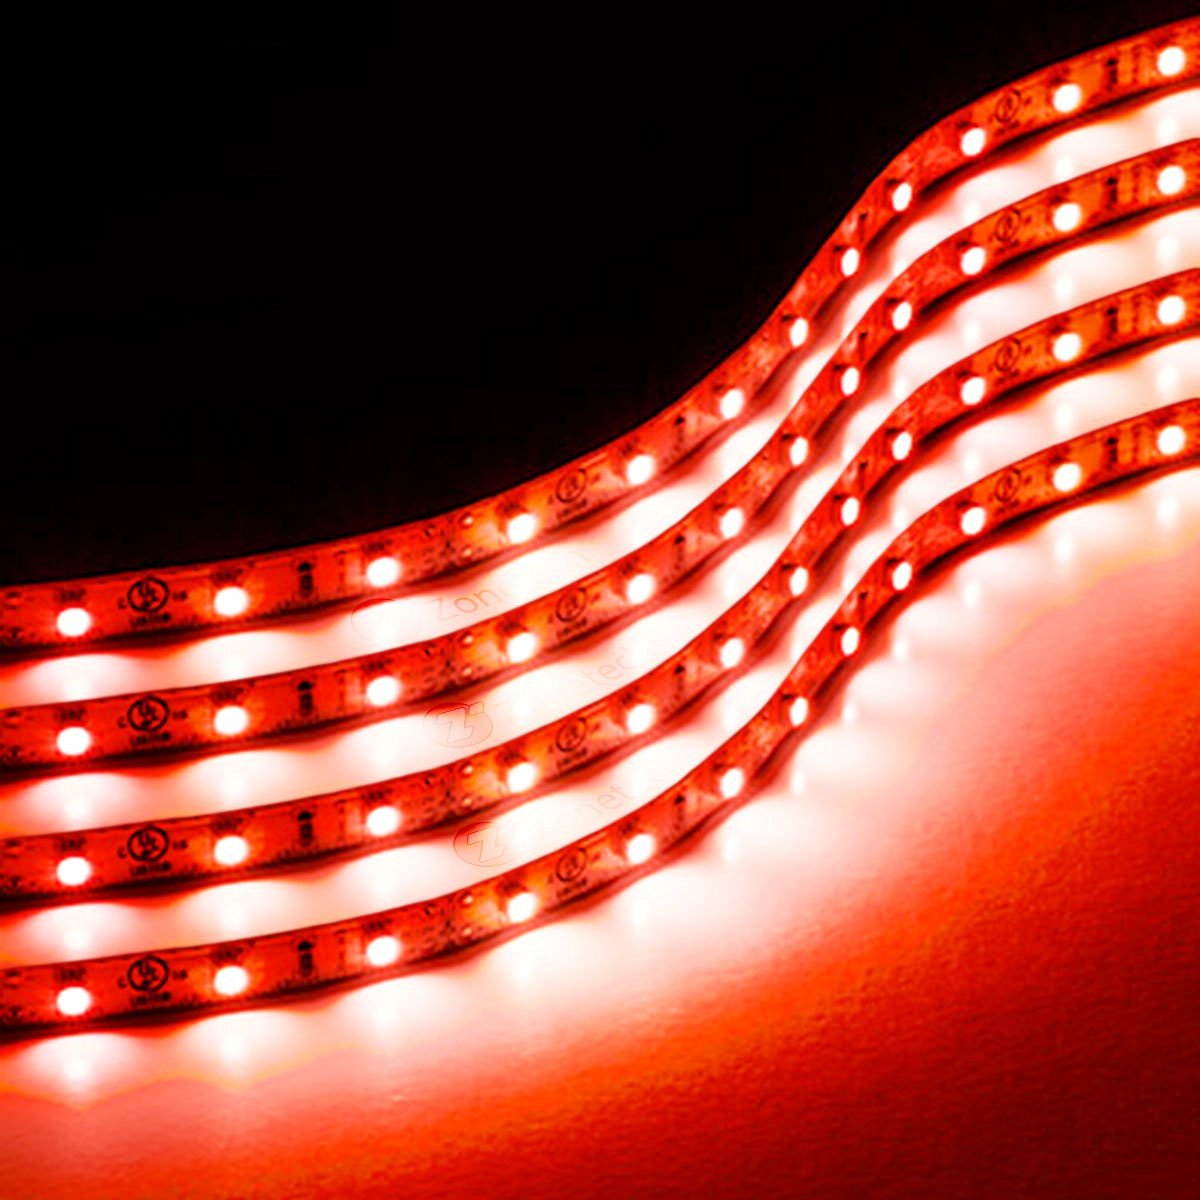 Cheap miniature led light strips find miniature led light strips zone tech 30cm flexible waterproof red light strips 4 pack led car flexible waterproof red aloadofball